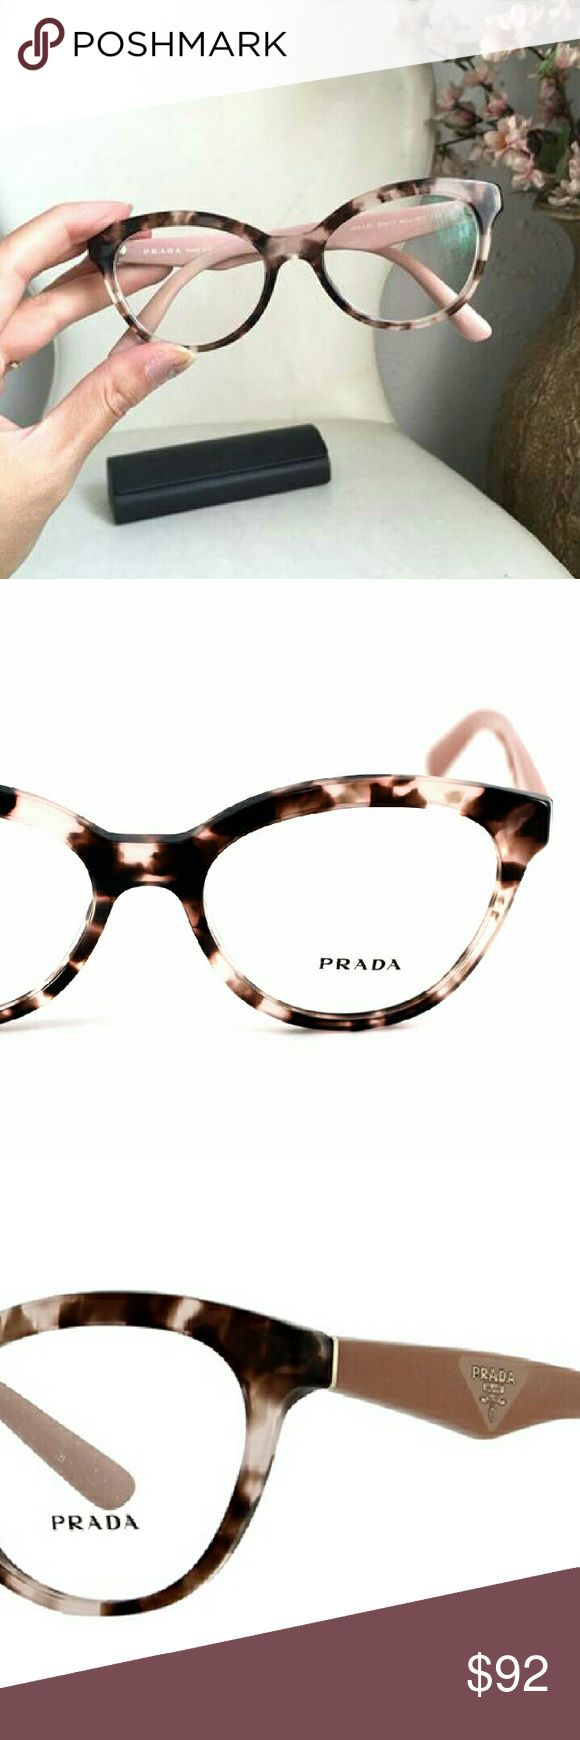 Prada 11rv Ophthalmic Glasses Frames Prada 11rv glasses frames size 52 eye; I have an extensive glasses collection and find I wear these the least so time to make room for new loves! Rx ready at a fraction of the price. *Make me an offer!* Prada Accessories Glasses